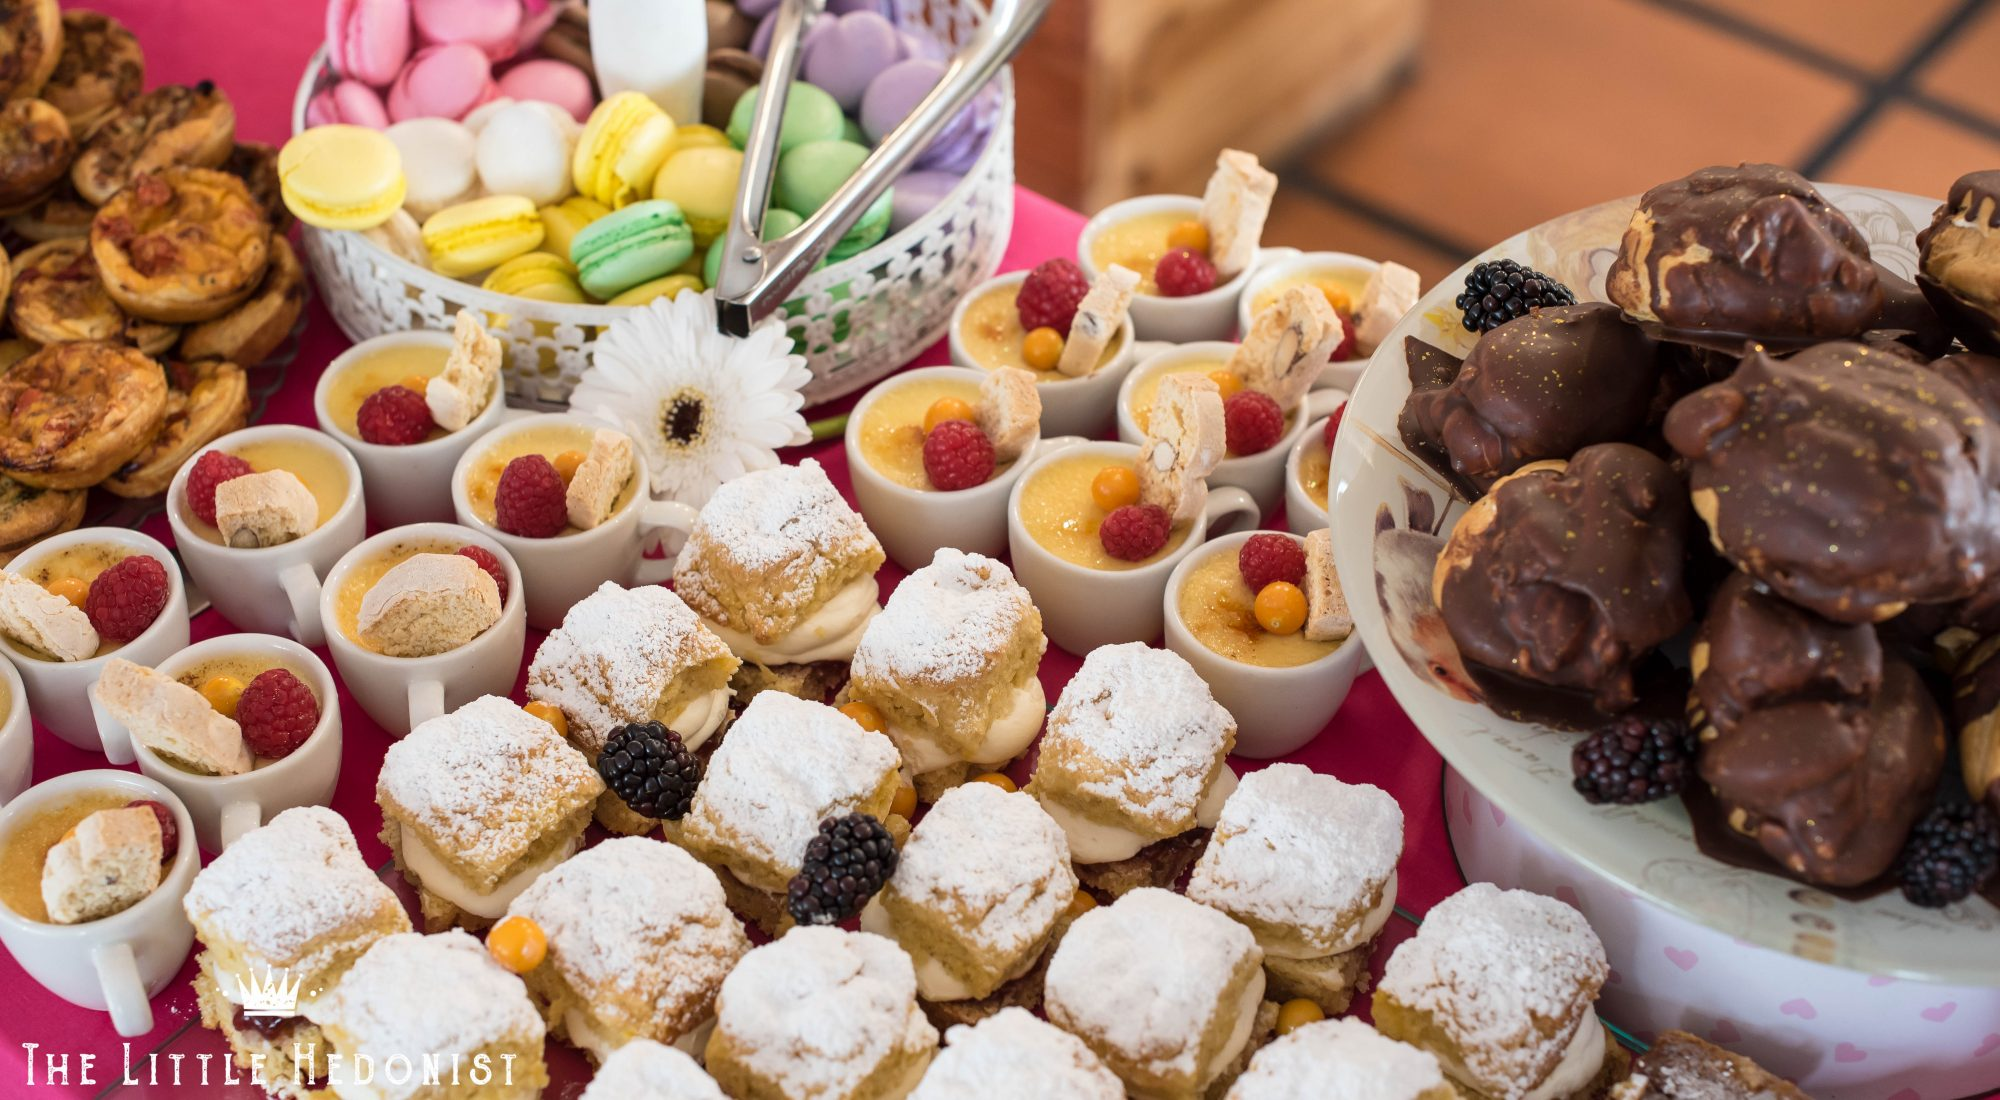 {EVENT} Have your cake and eat it at Sweet Cillie's new high tea